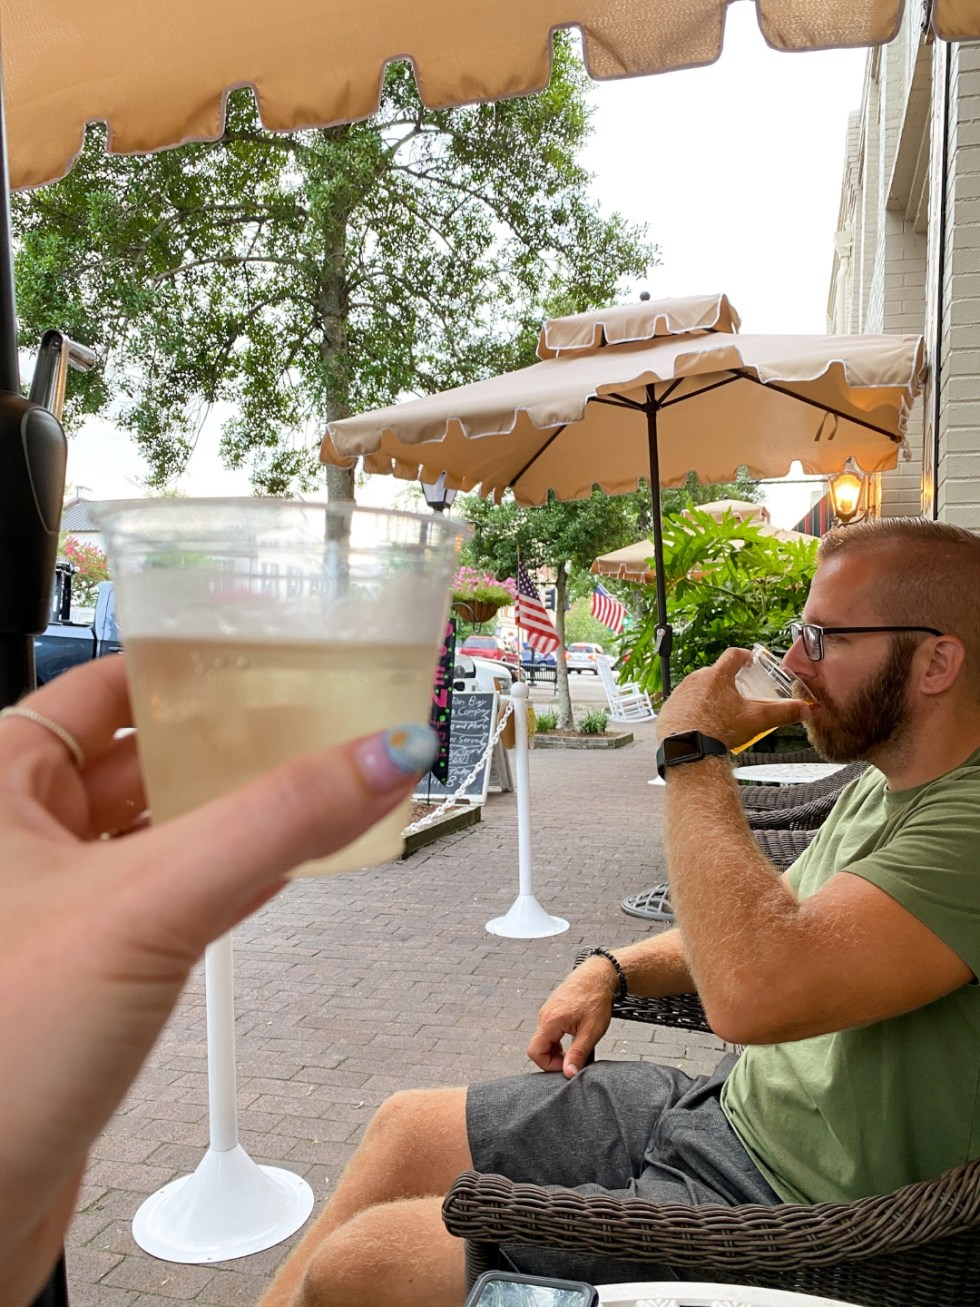 Top 10 Best Things to Do in Edenton, NC: A Complete Travel Guide - I'm Fixin' To - @imfixintoblog | Edenton Travel Guide by popular NC travel guid, I'm Fixin' To: image of a man and woman sitting under a tan fabric umbrella and drinking white wine in plastic cups.